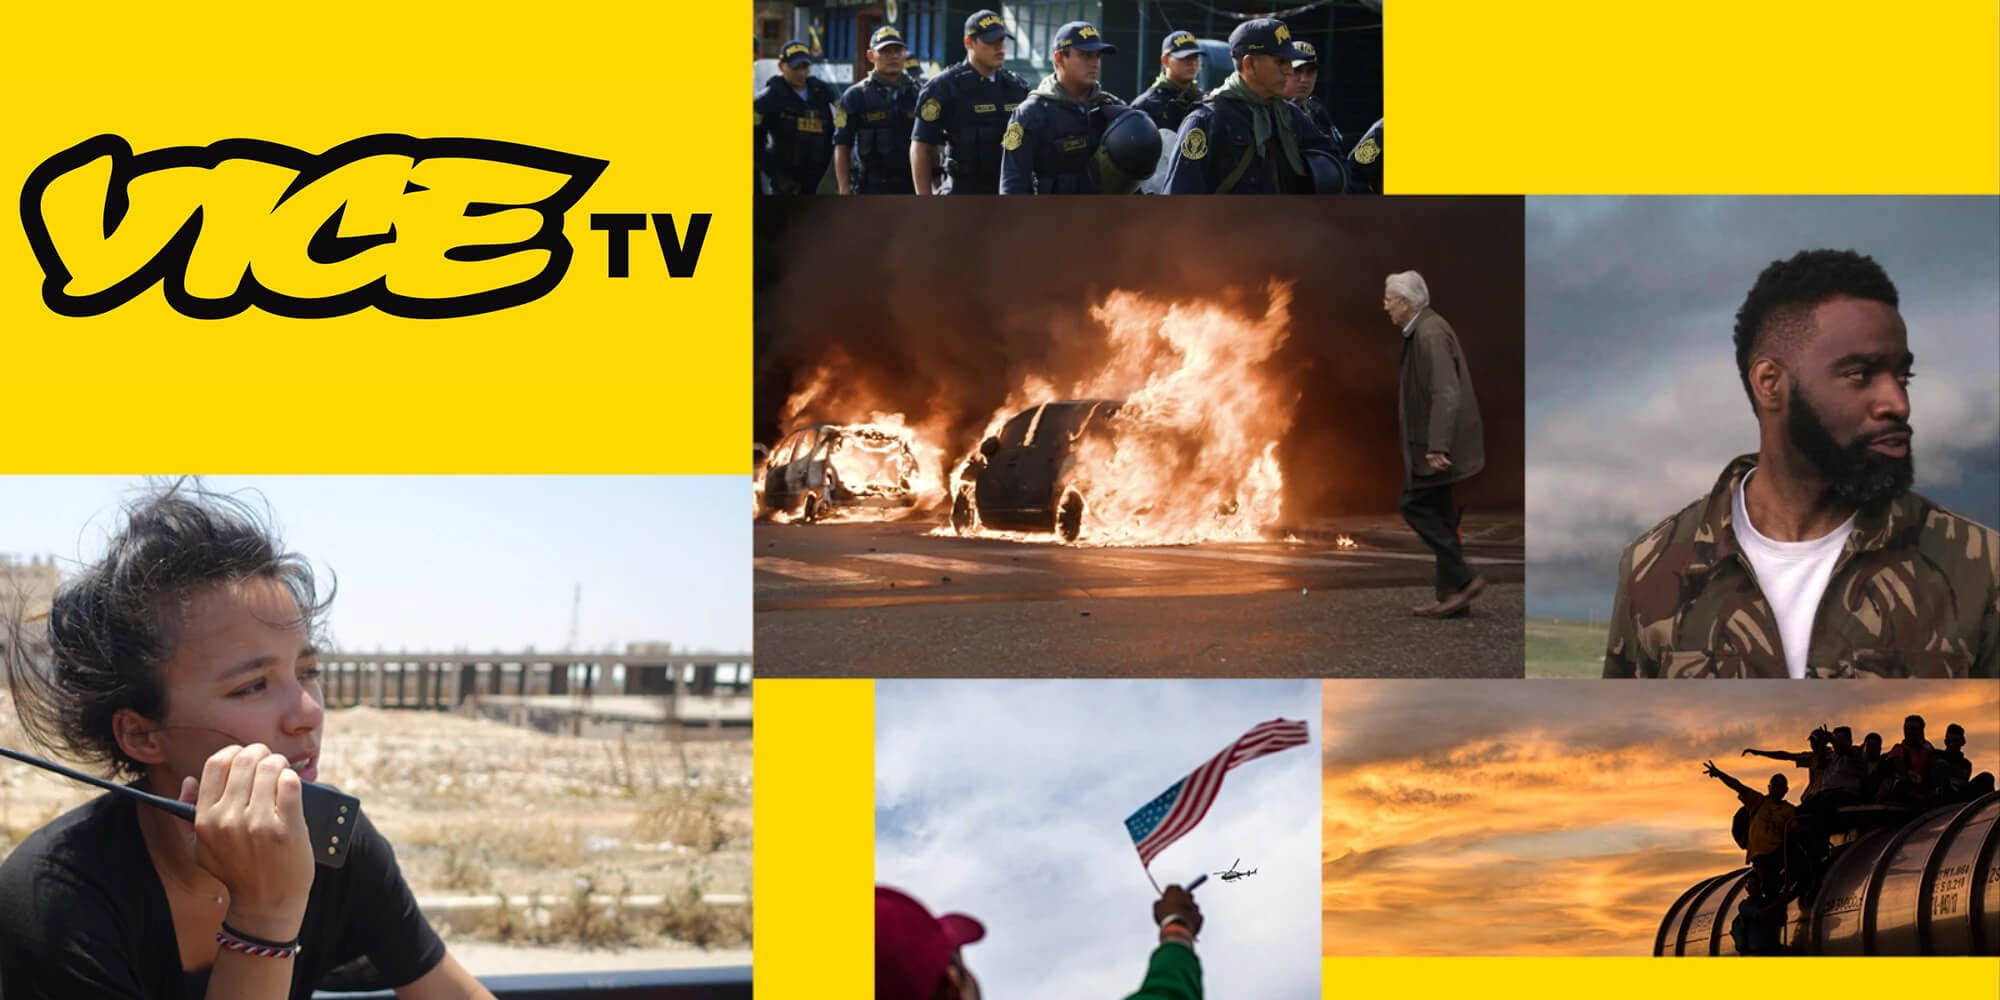 How to watch 'Vice News Tonight'